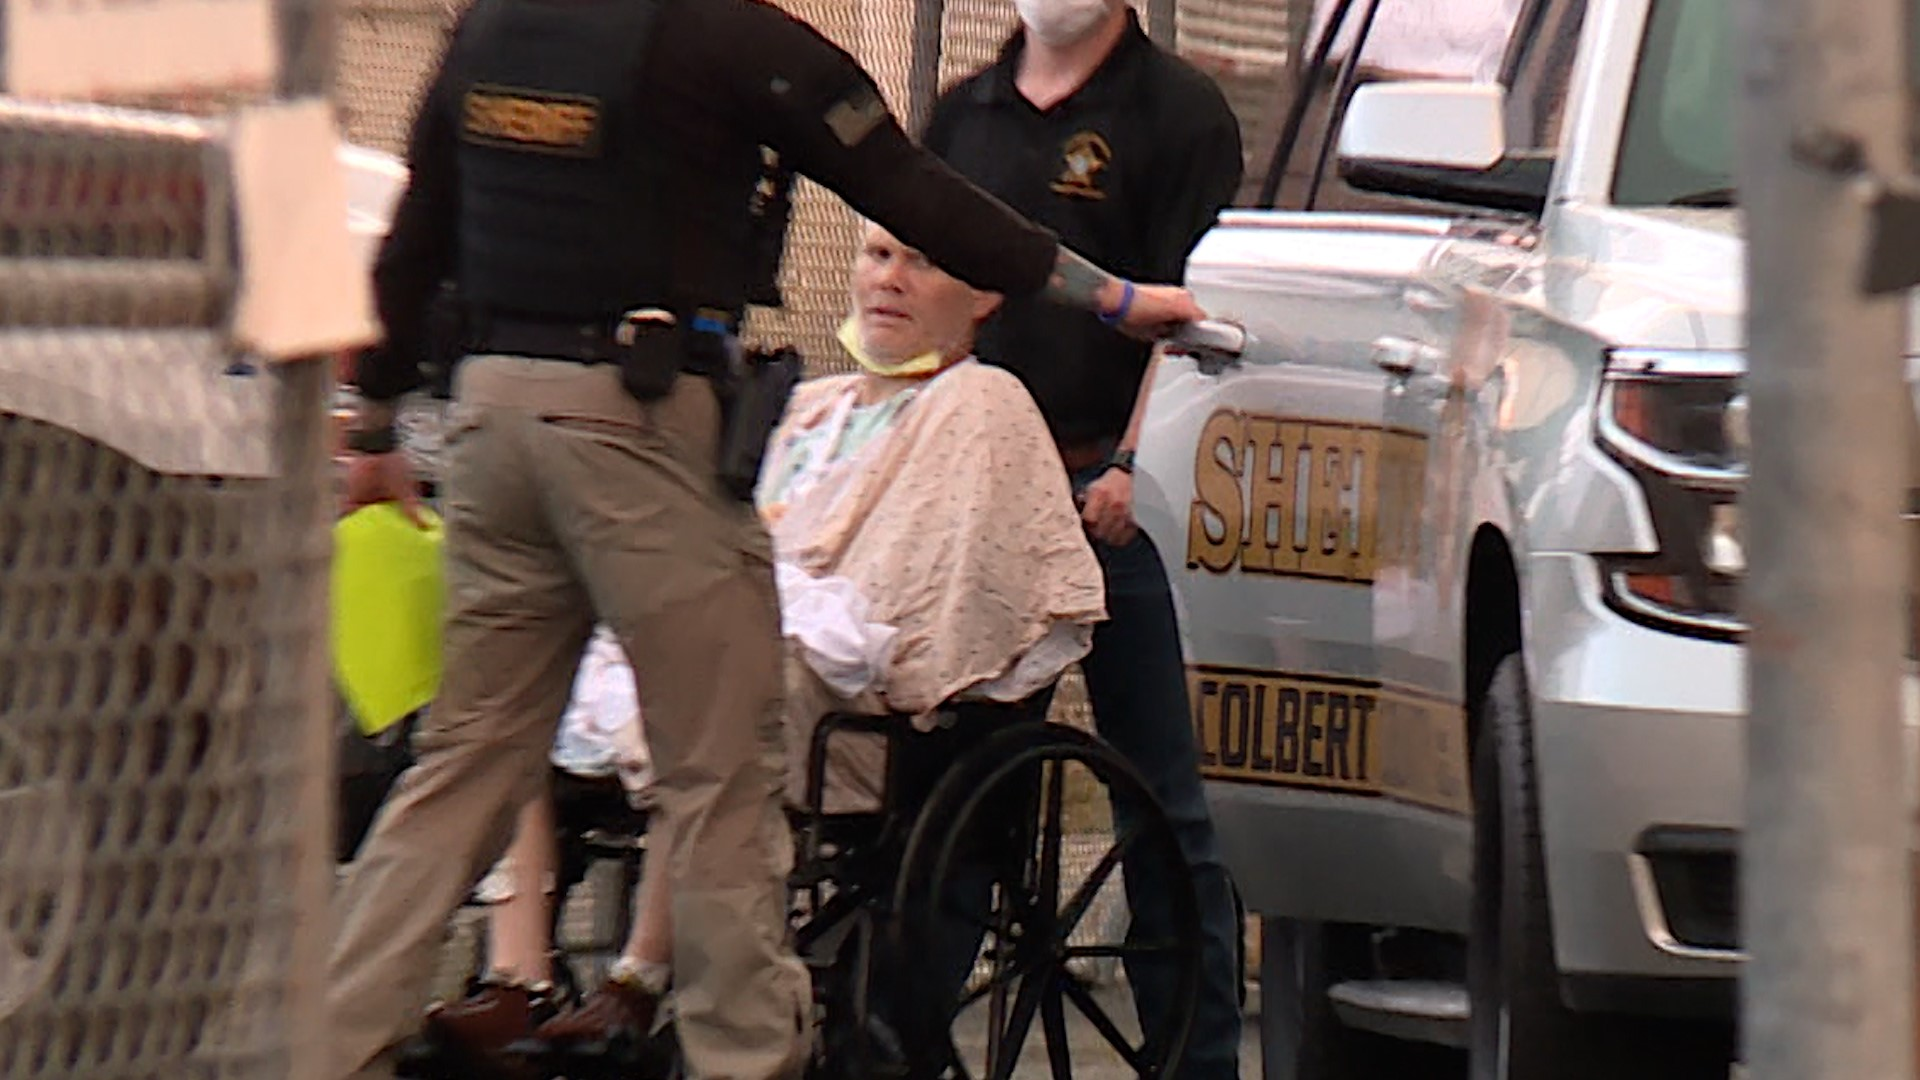 Brian Lansing Martin was released from the hospital and taken to jail in Colbert County